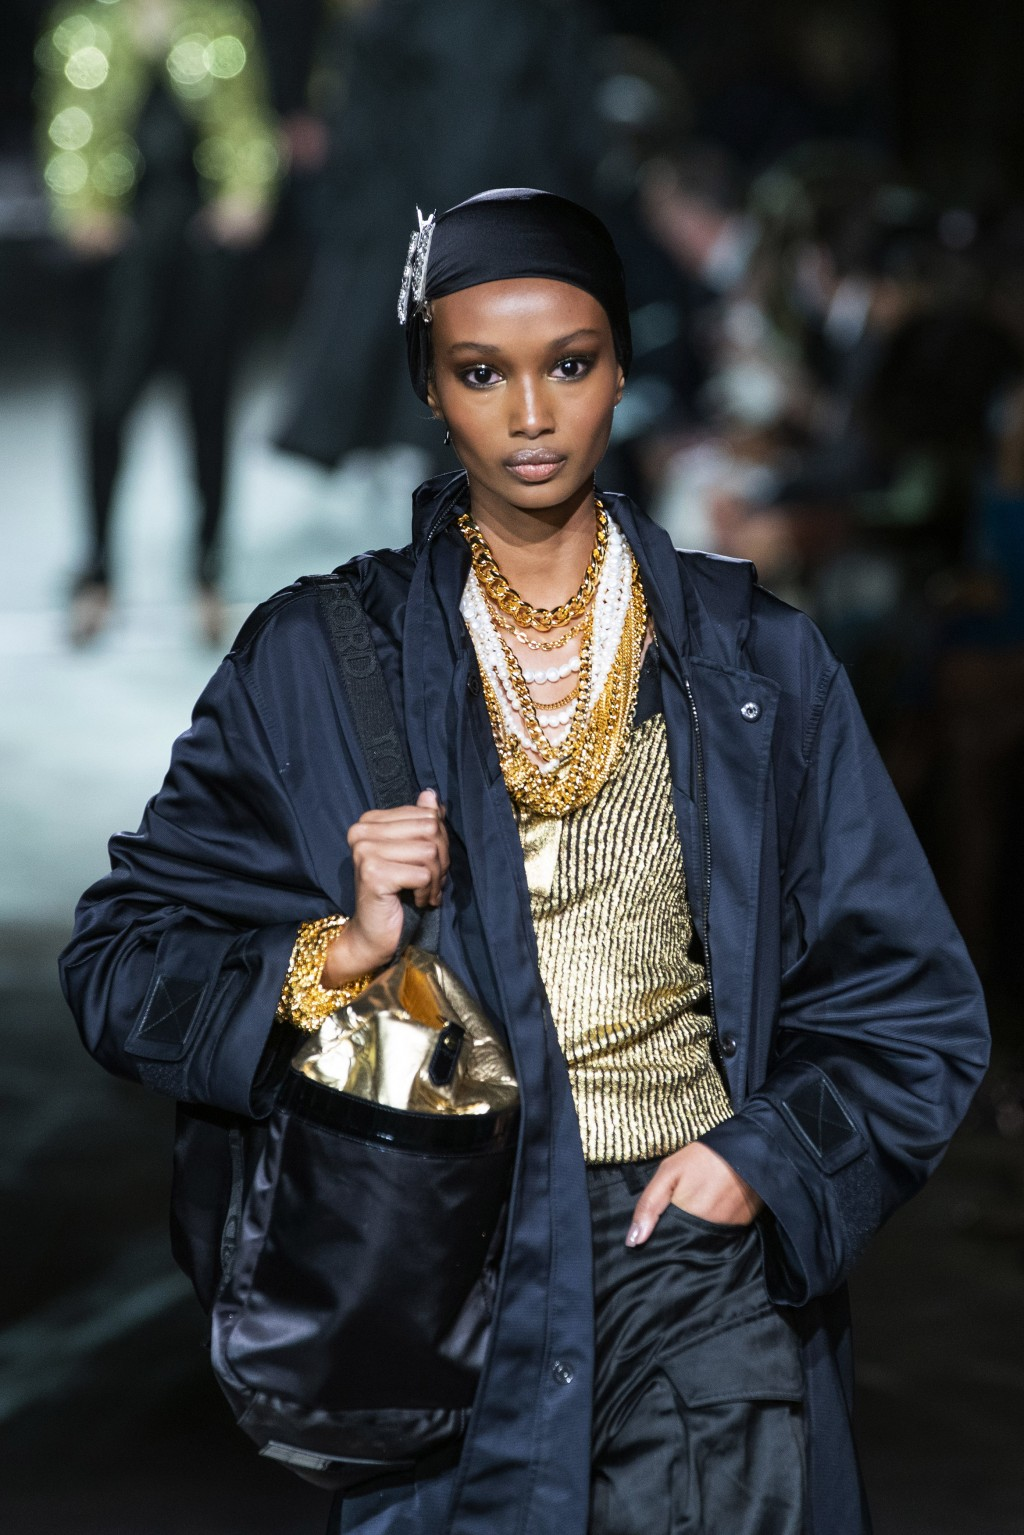 A model walks the runway at the Tom Ford spring/summer 2022 fashion show in the Lincoln Center during New York Fashion Week on Sunday, Sept. 12, 2021....